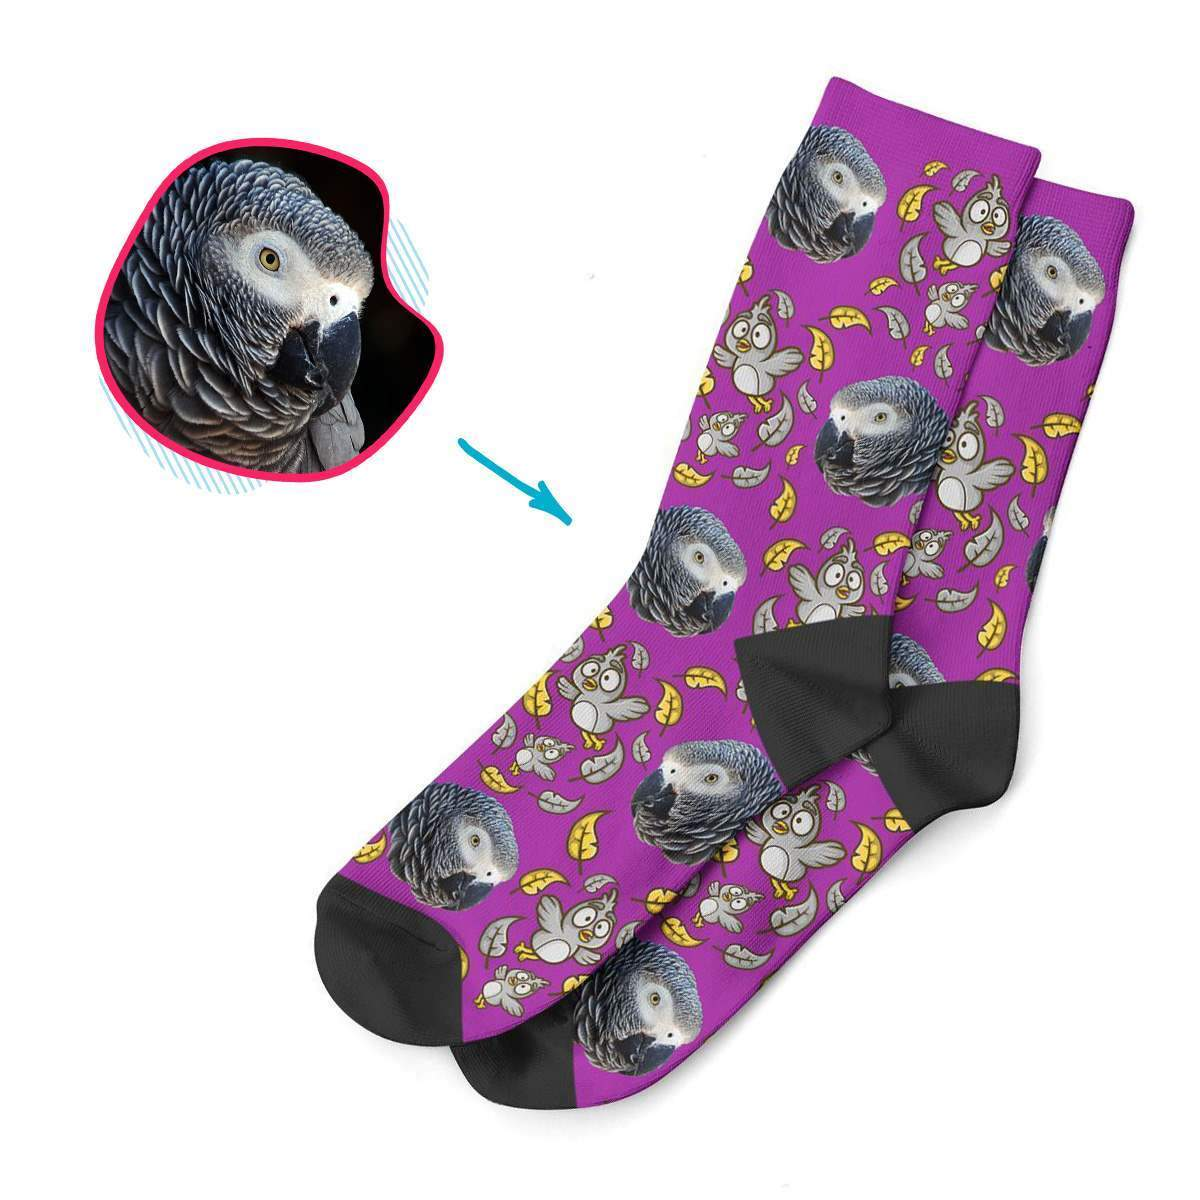 purple Bird socks personalized with photo of face printed on them